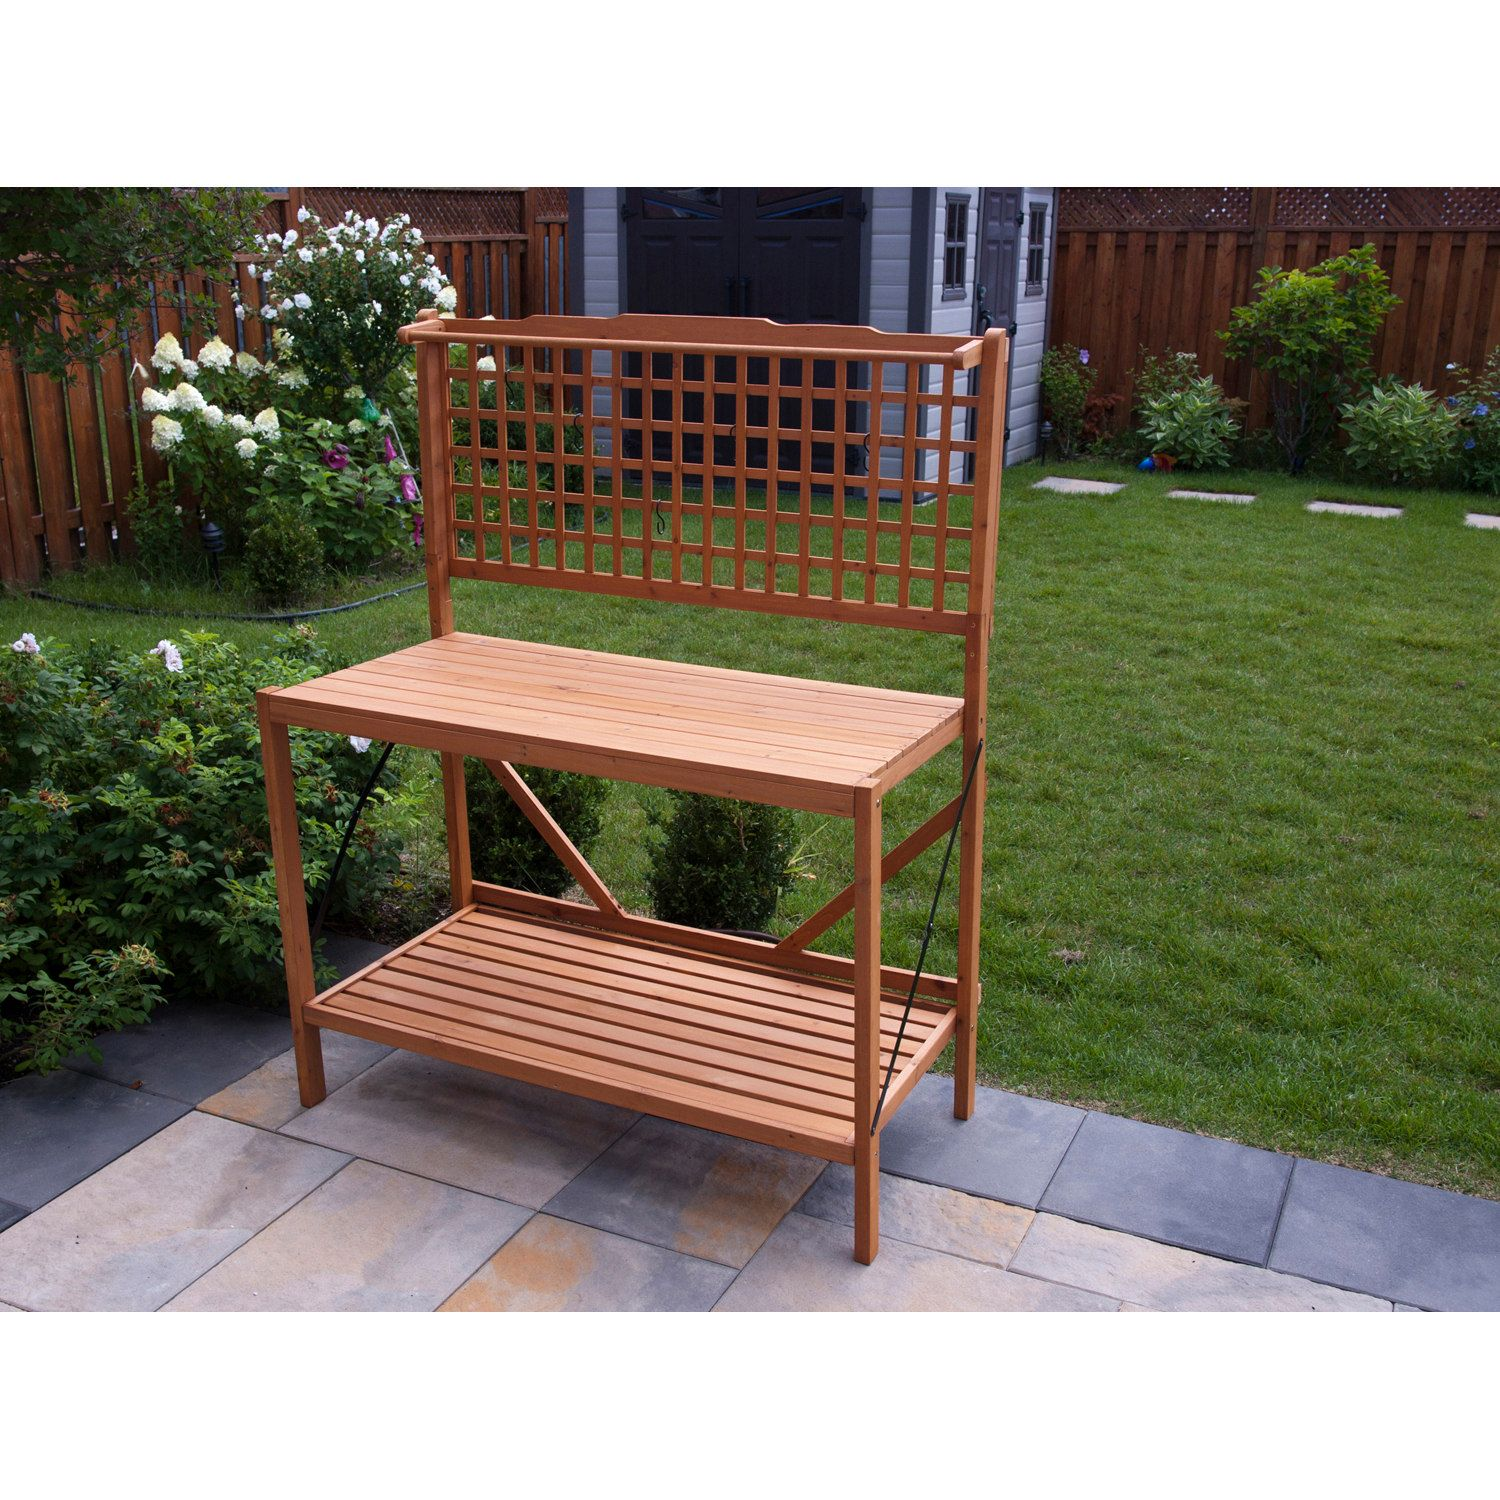 Foldable potting bench products